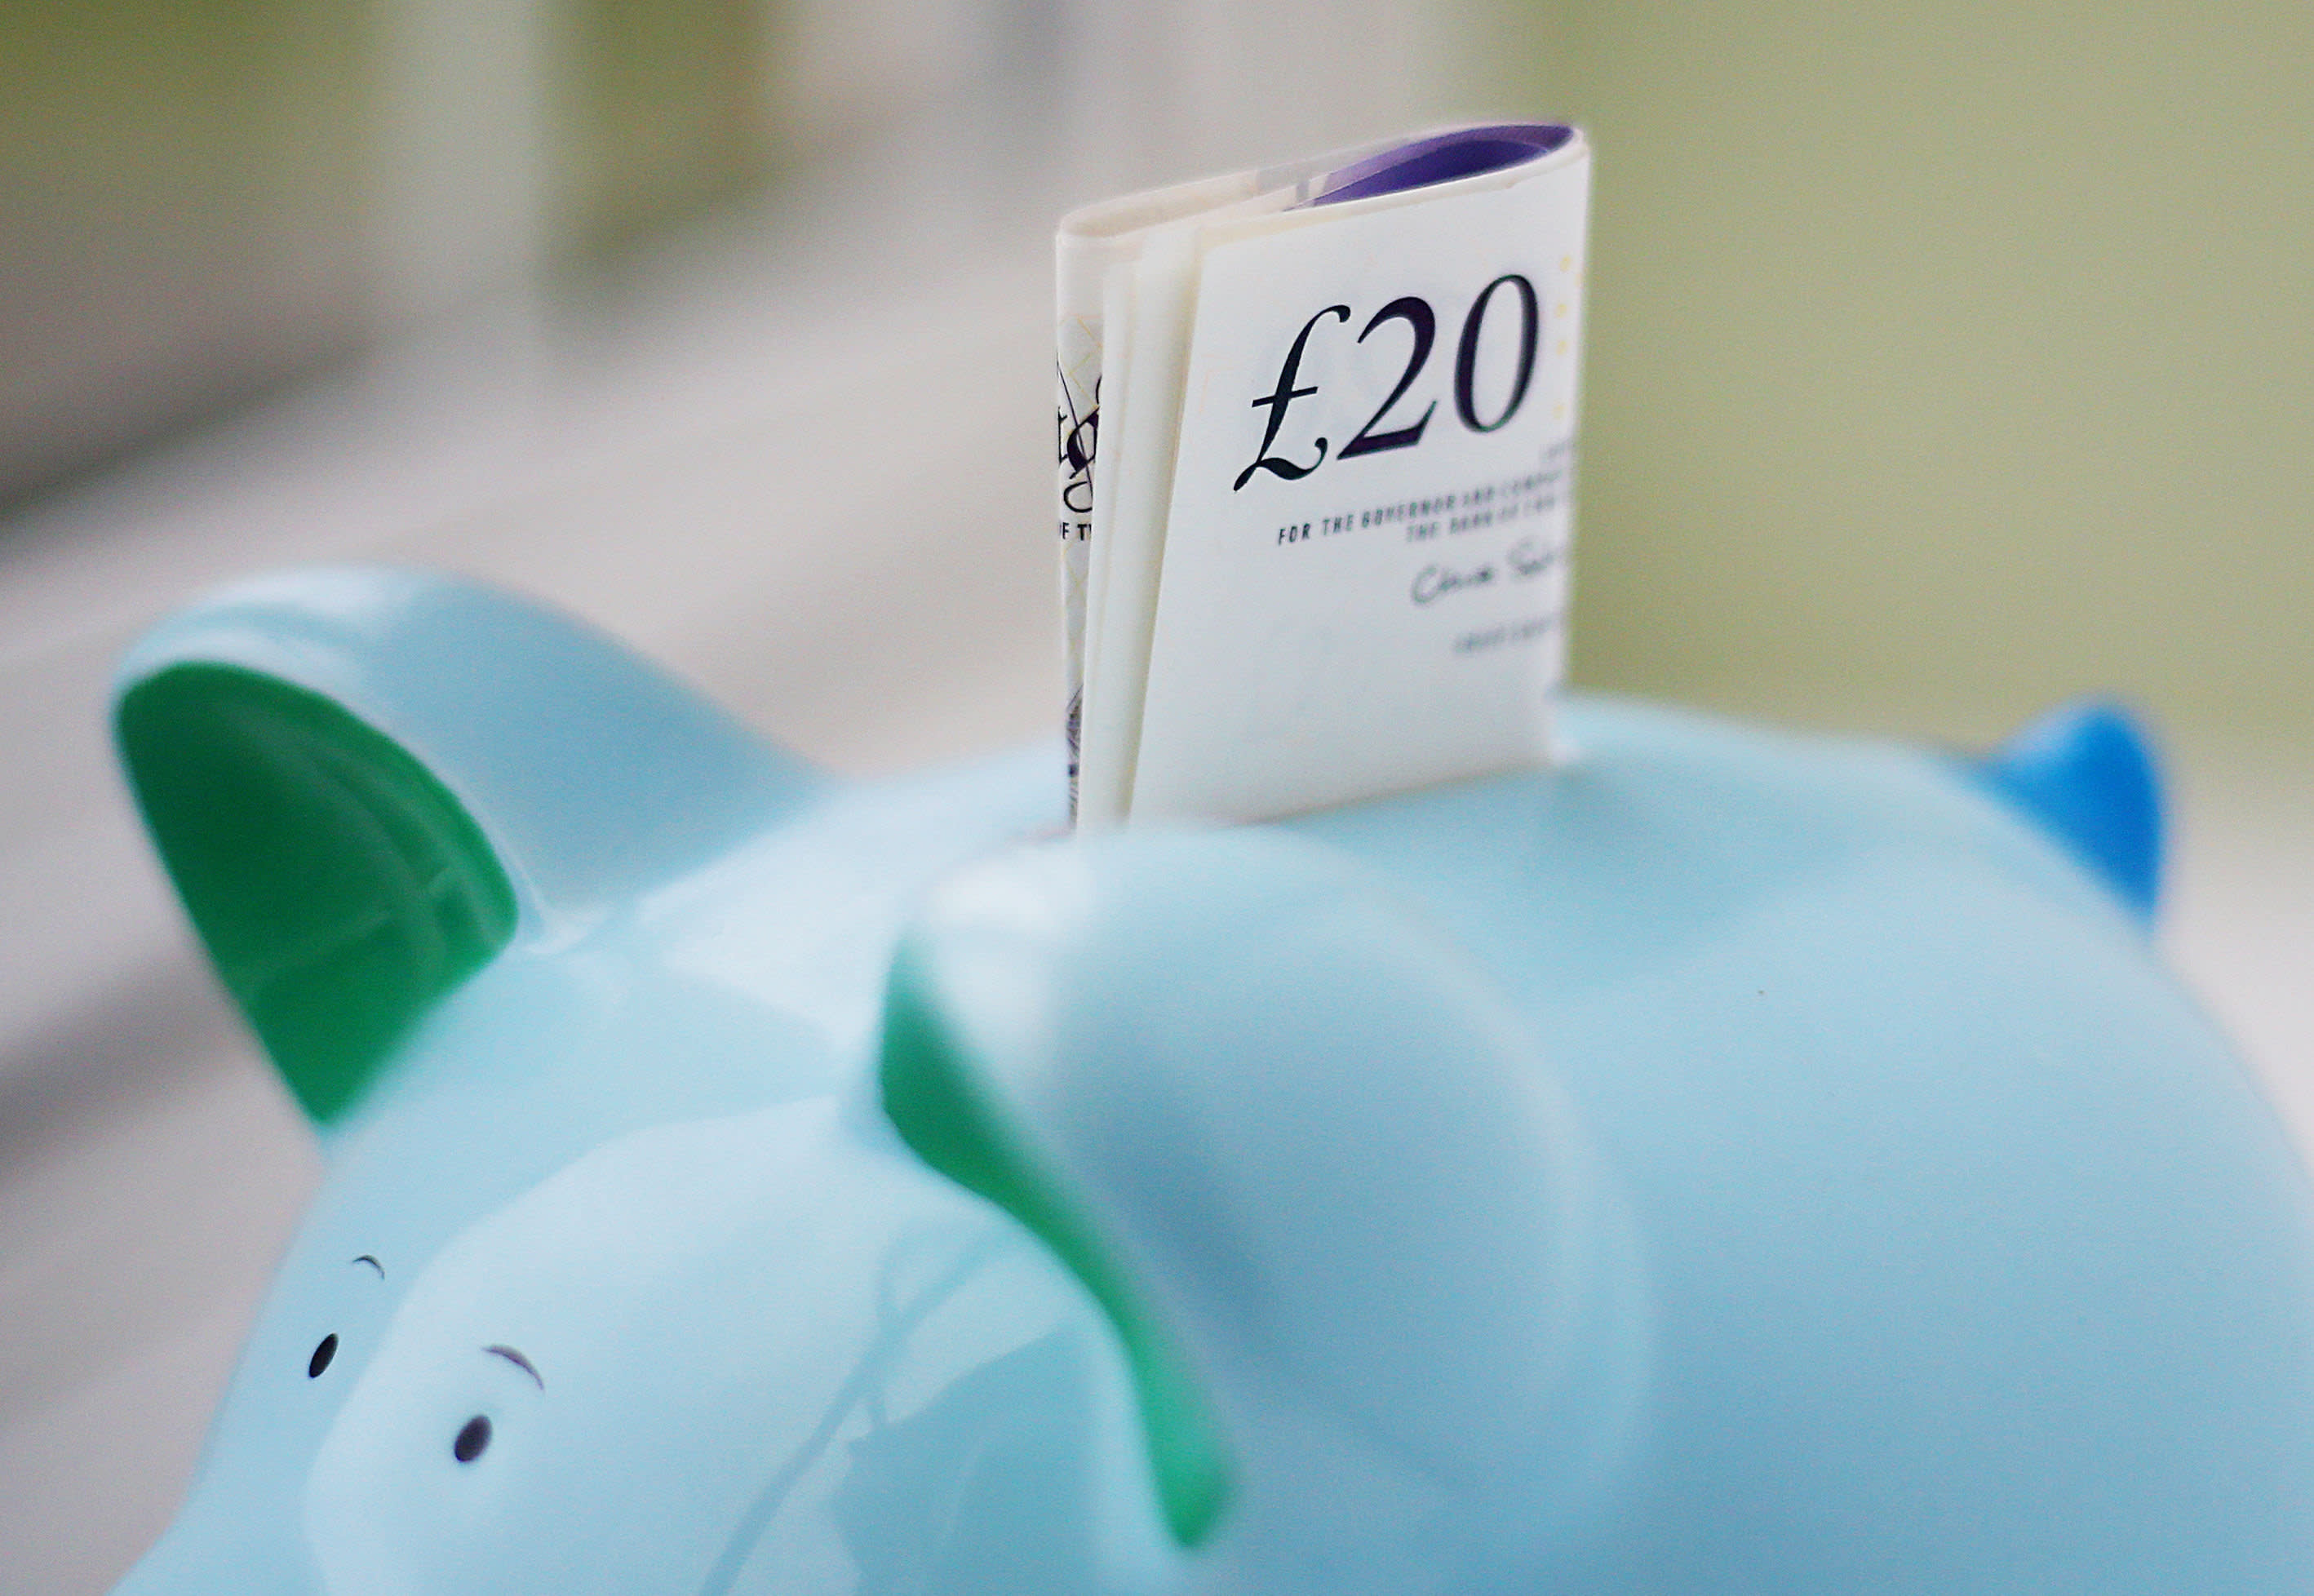 Master trusts forced to up reserves due to levy increase